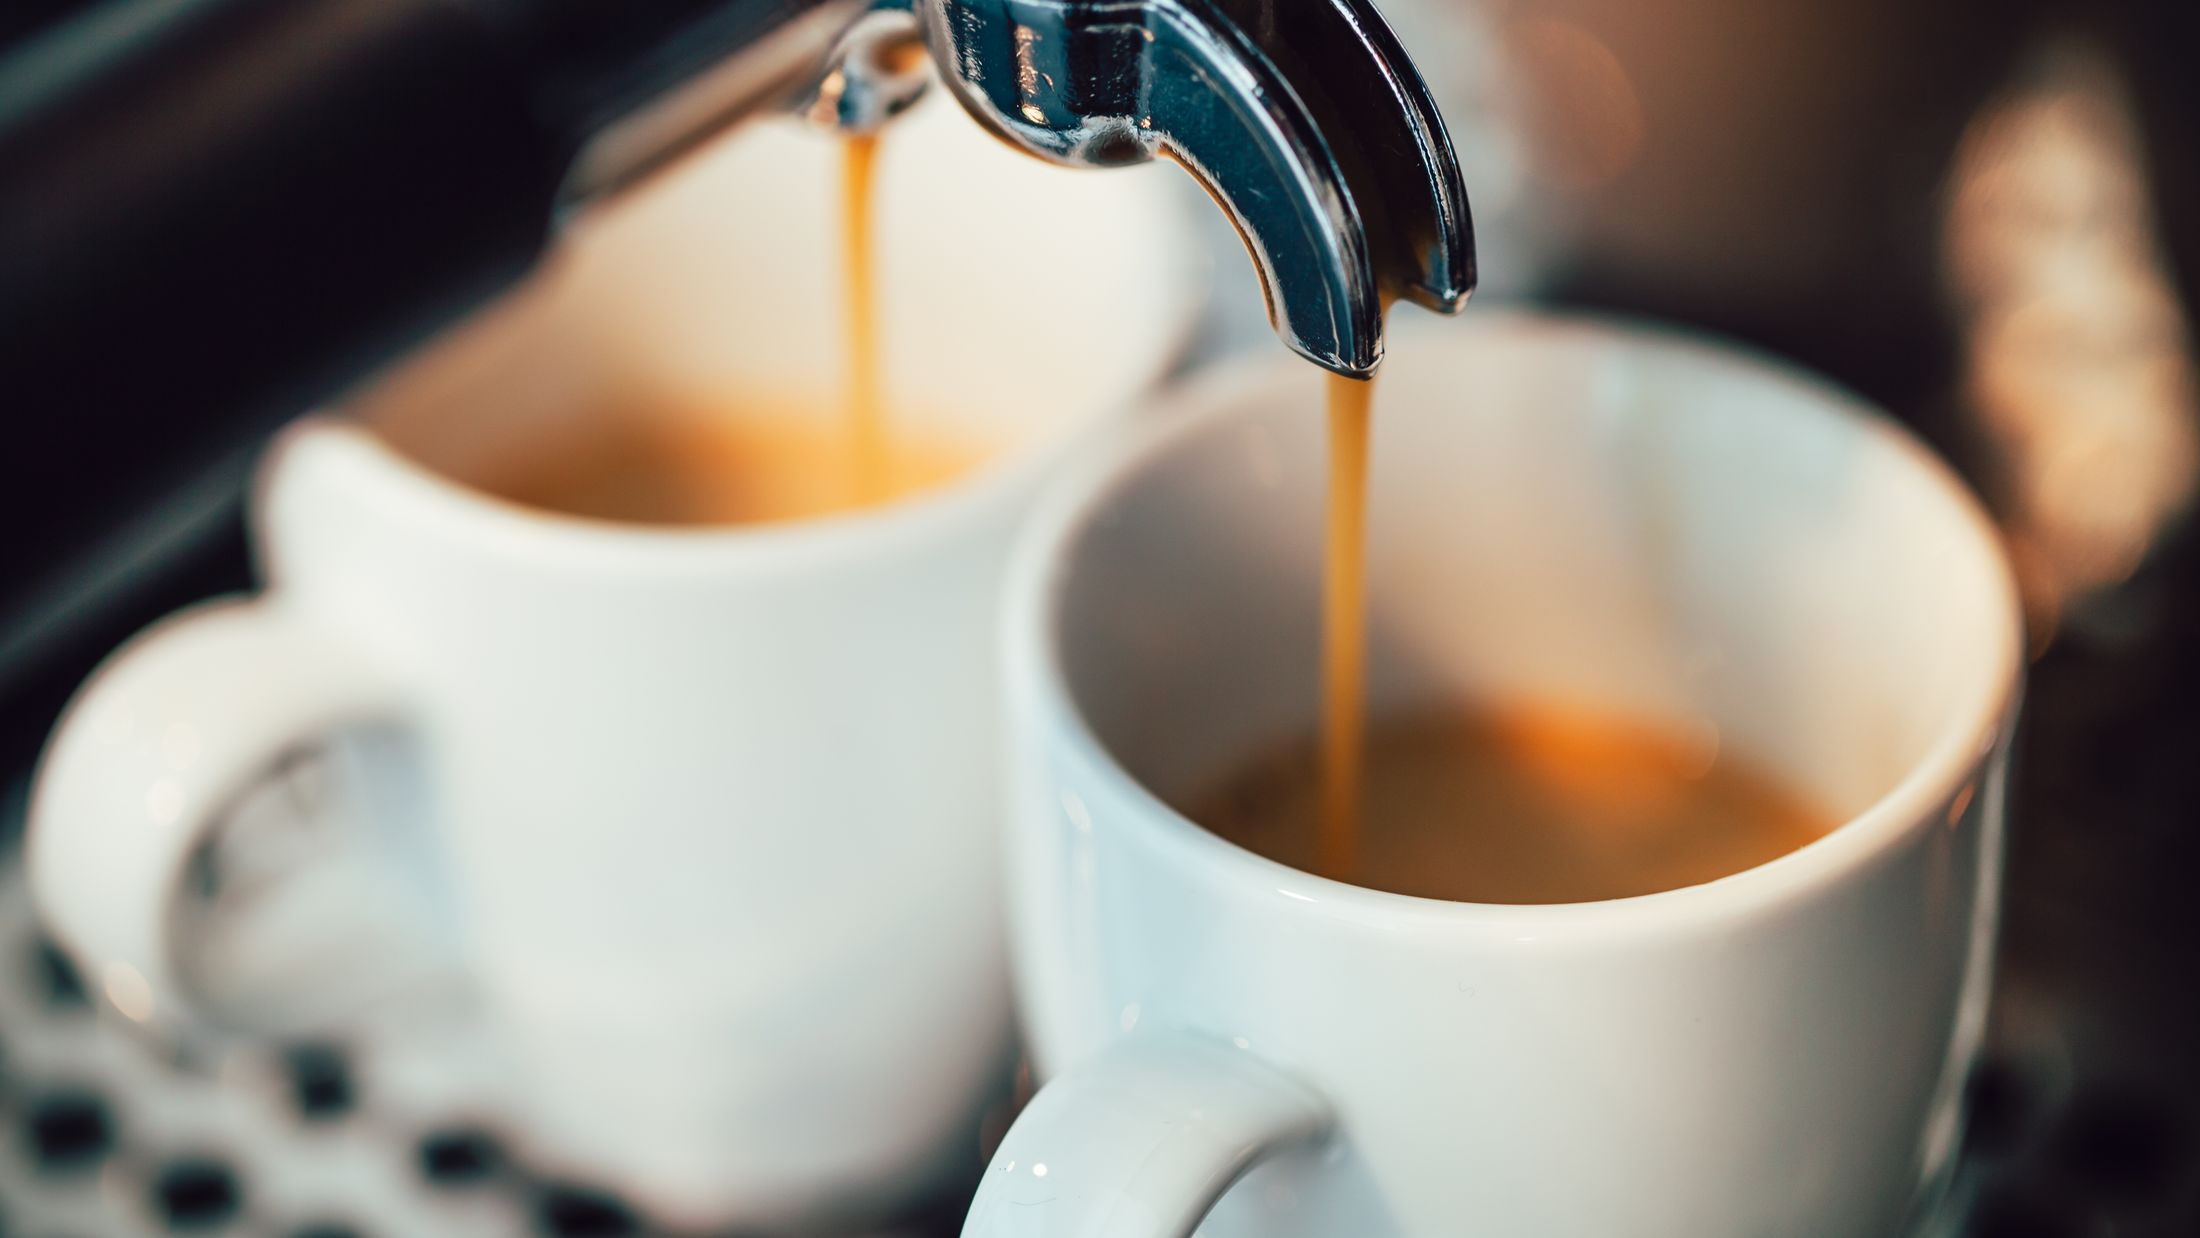 Close up image of espresso pouring into white cups; Shutterstock ID 386462938; PO: Project Italy - Facilities images; Job: Project Italy - Facilities images; Client: H&J/Citalia